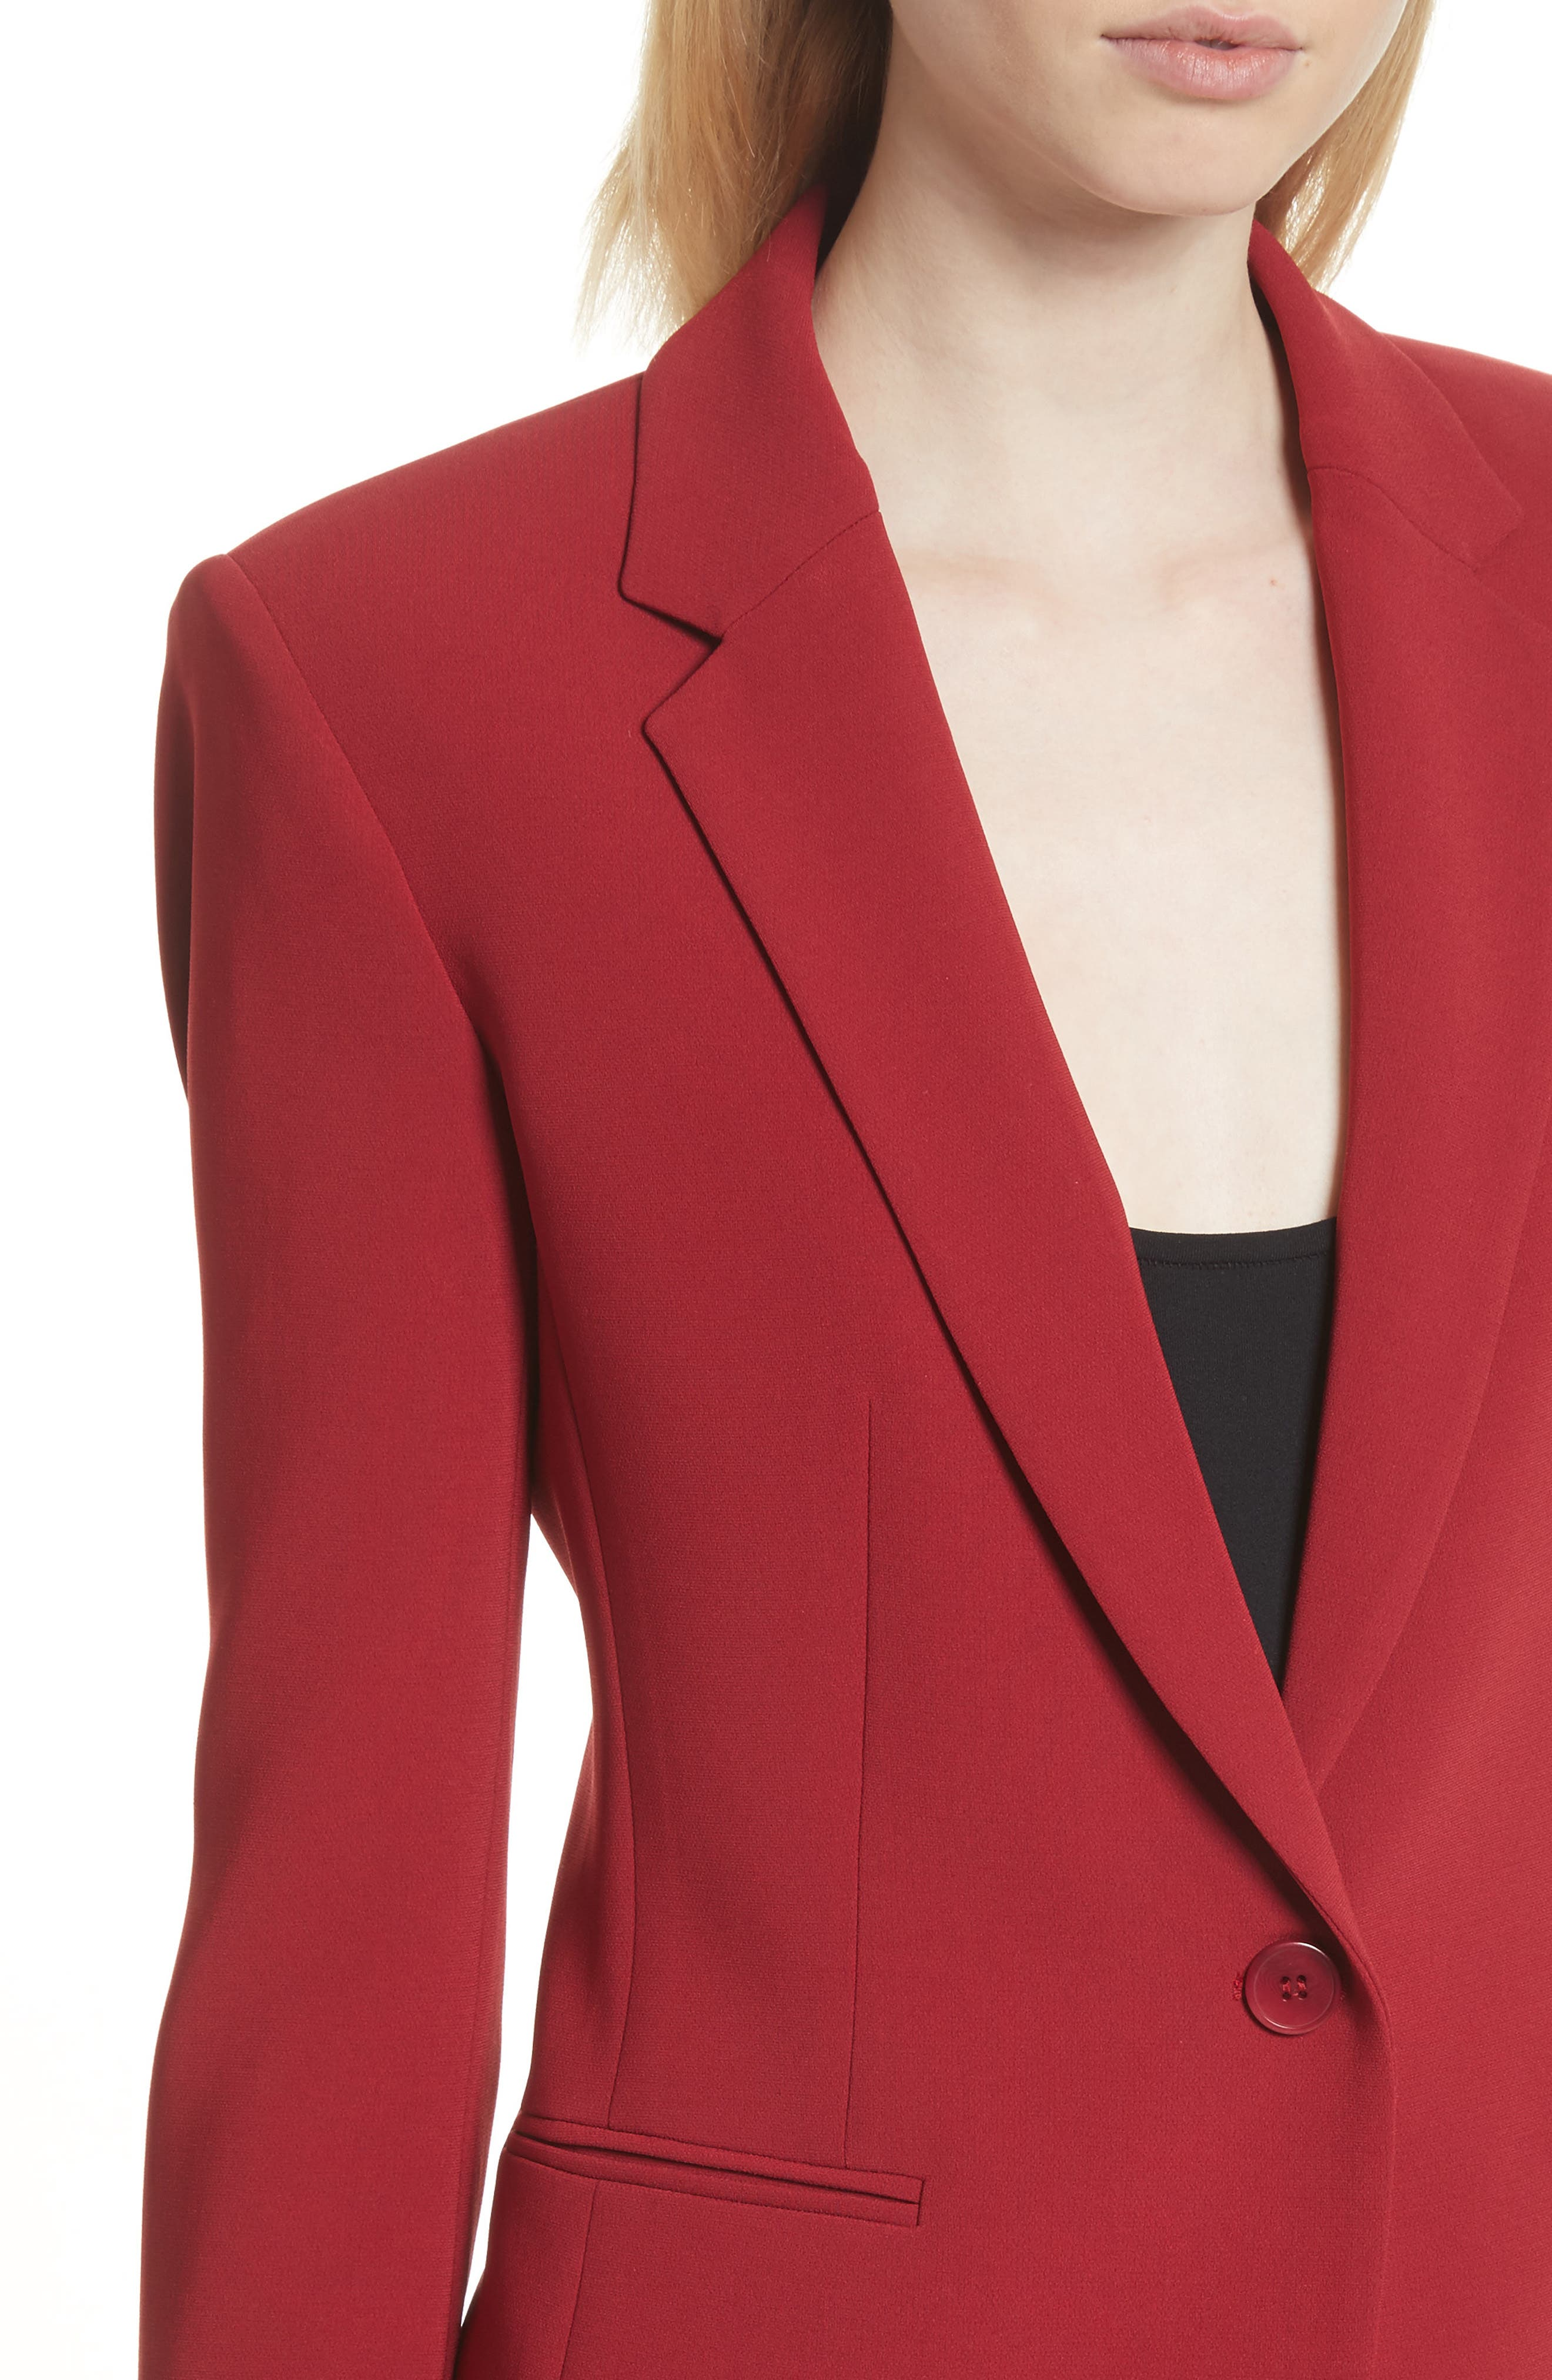 Admiral Crepe Power Jacket,                             Alternate thumbnail 4, color,                             Bright Raspberry